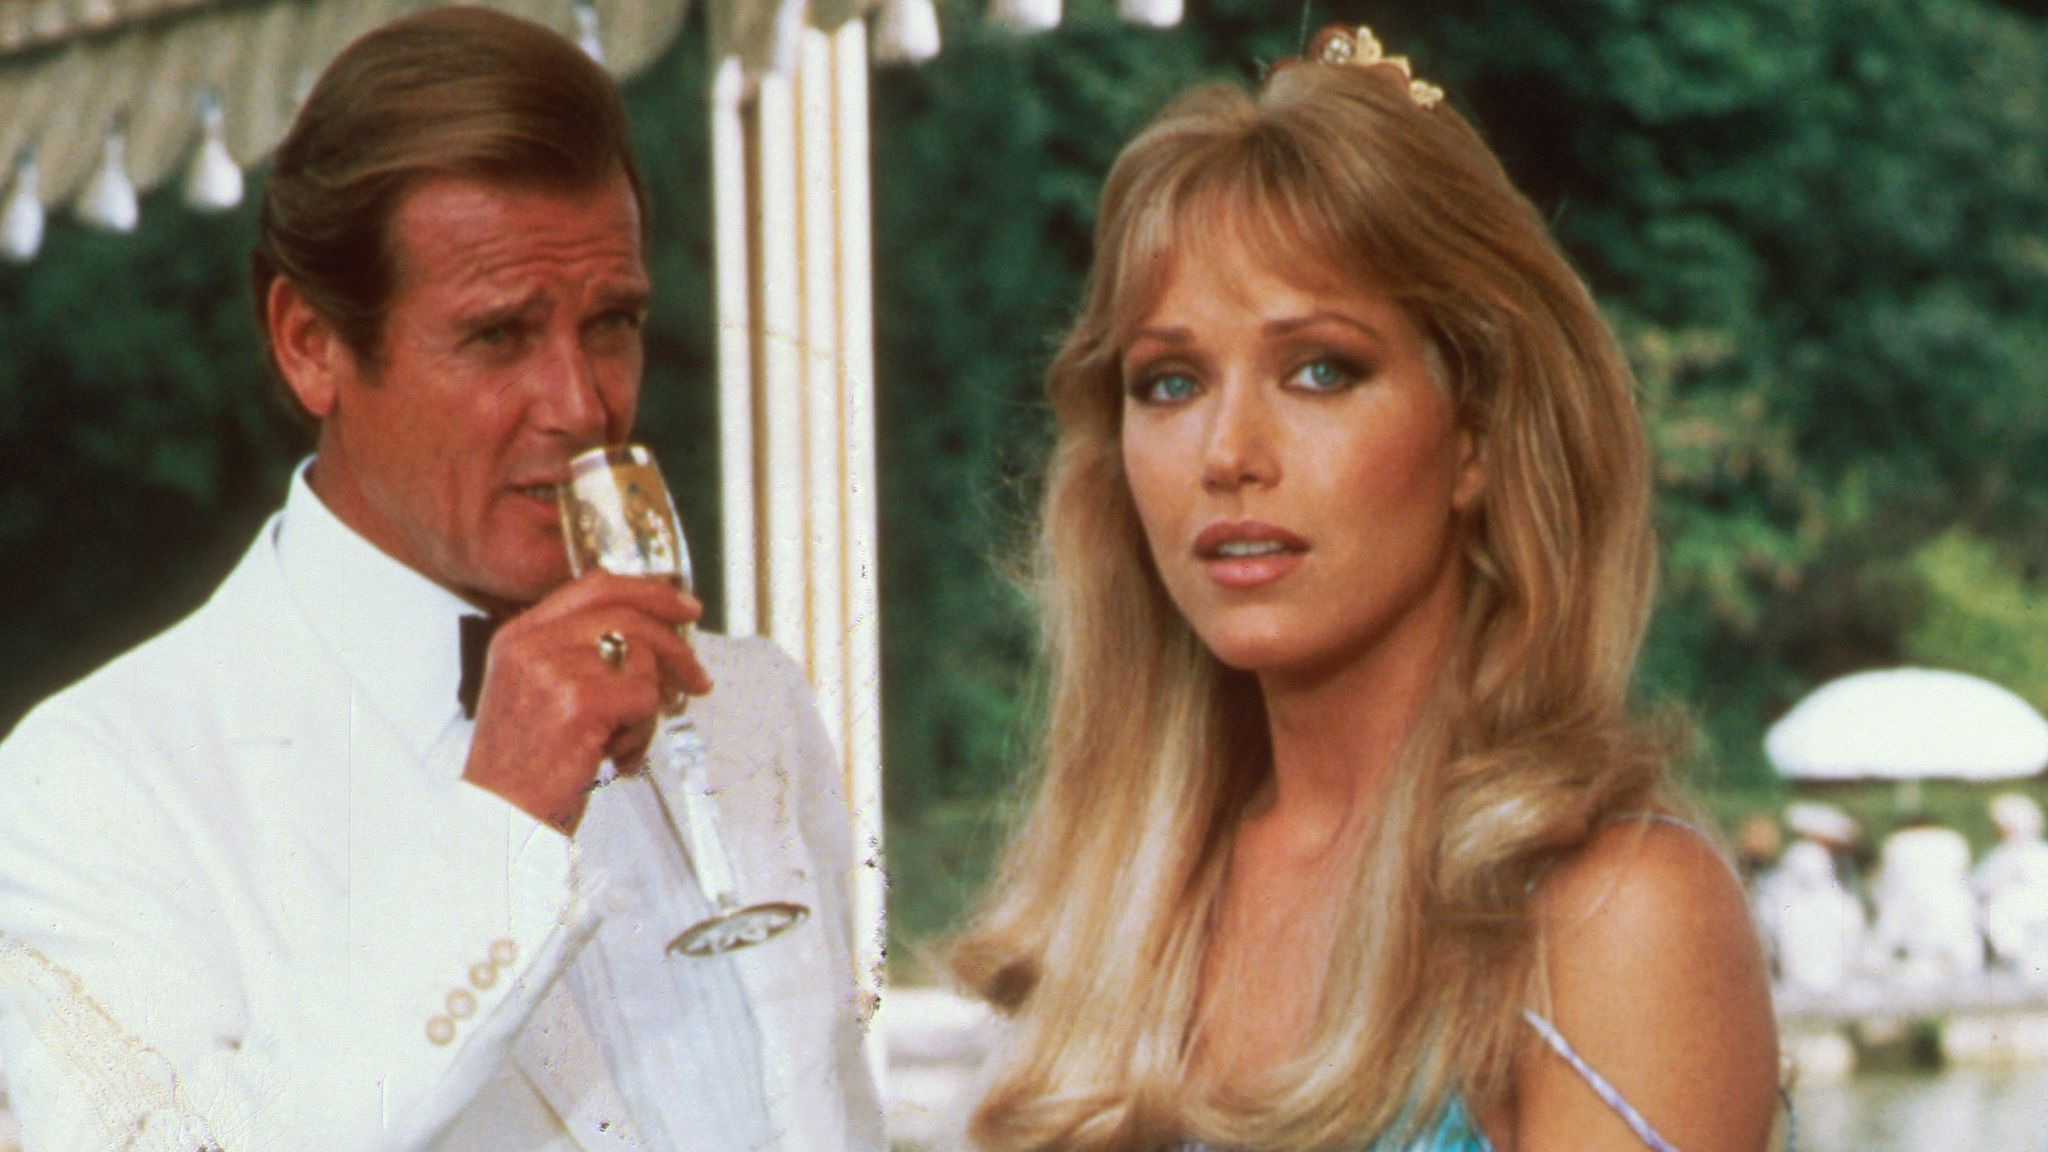 Tanya Roberts: Bond girl and Charlie's Angels star is still alive - despite agent earlier saying she had died | Ents & Arts News | Sky News